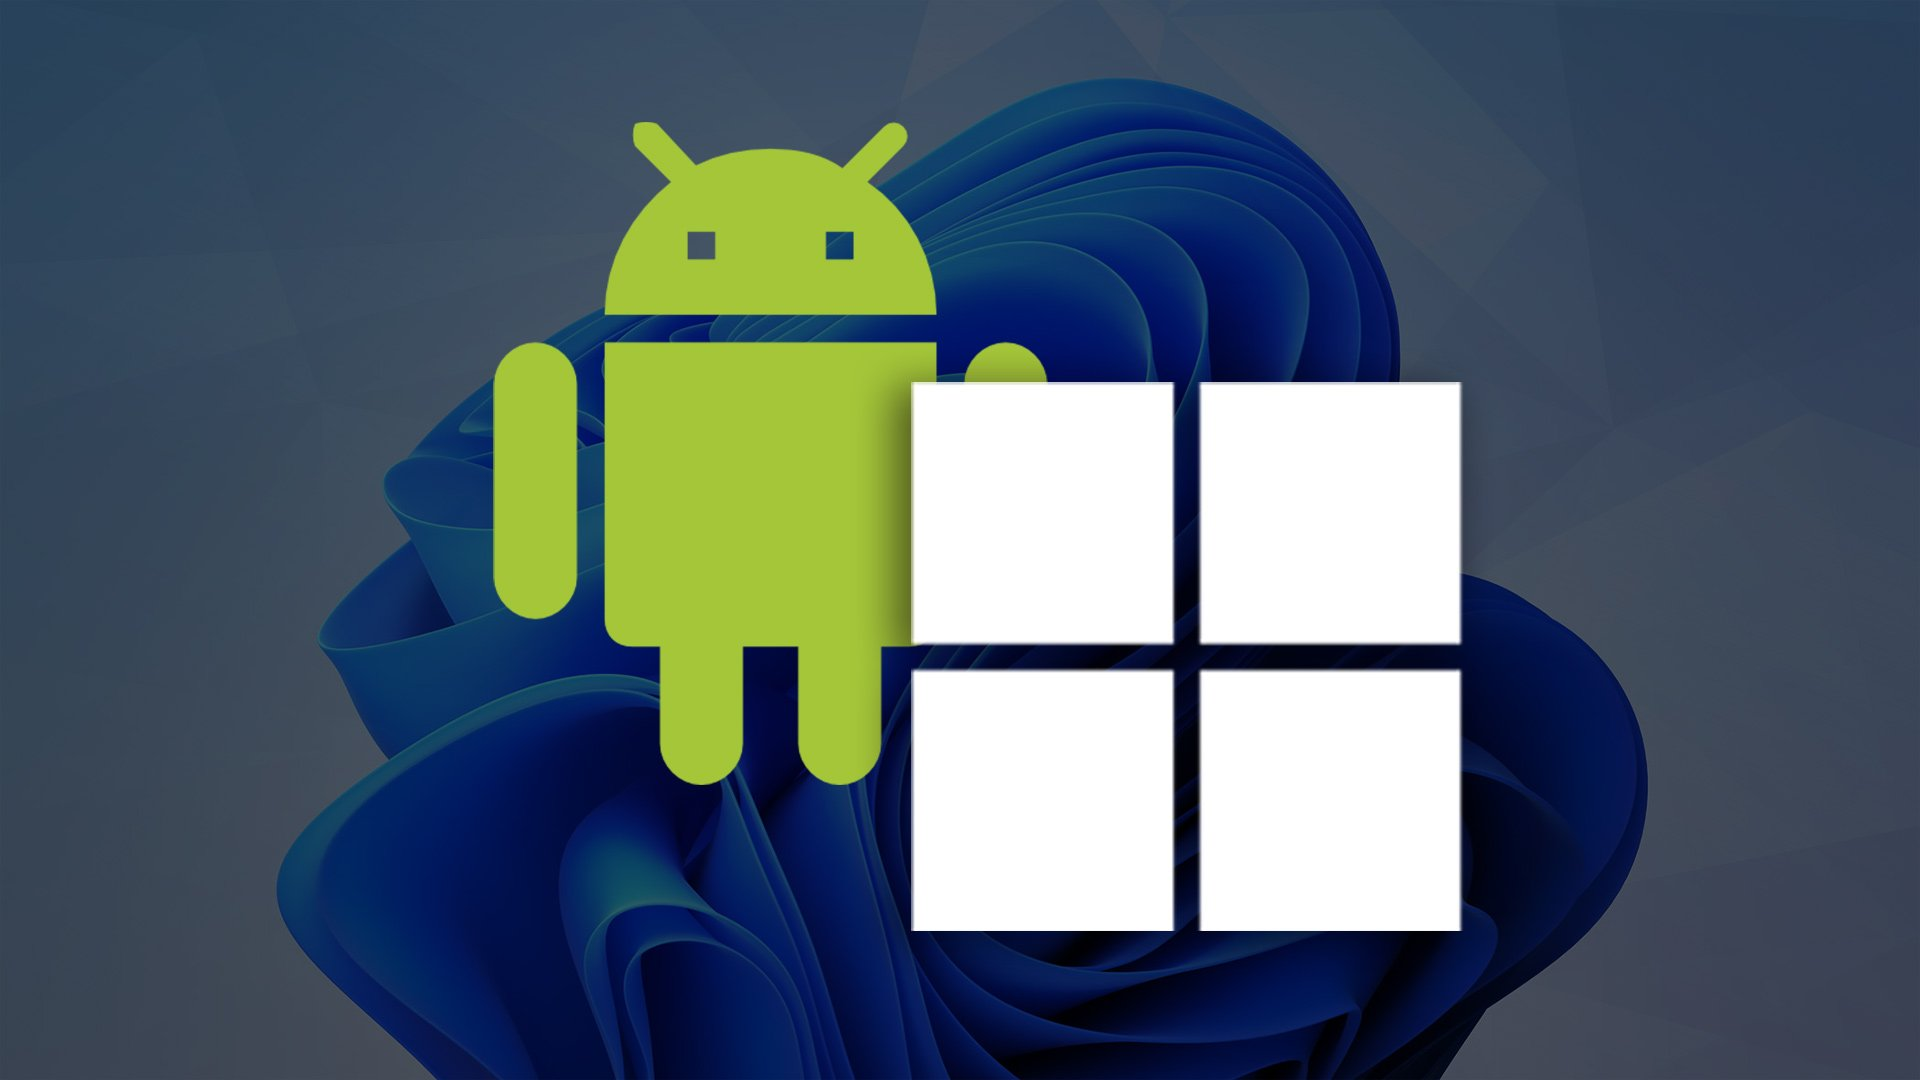 Android, App Store, Windows Store, Microsoft Store, Windows Logo, Bugdroid, Android App Store, Windows 11 App Store